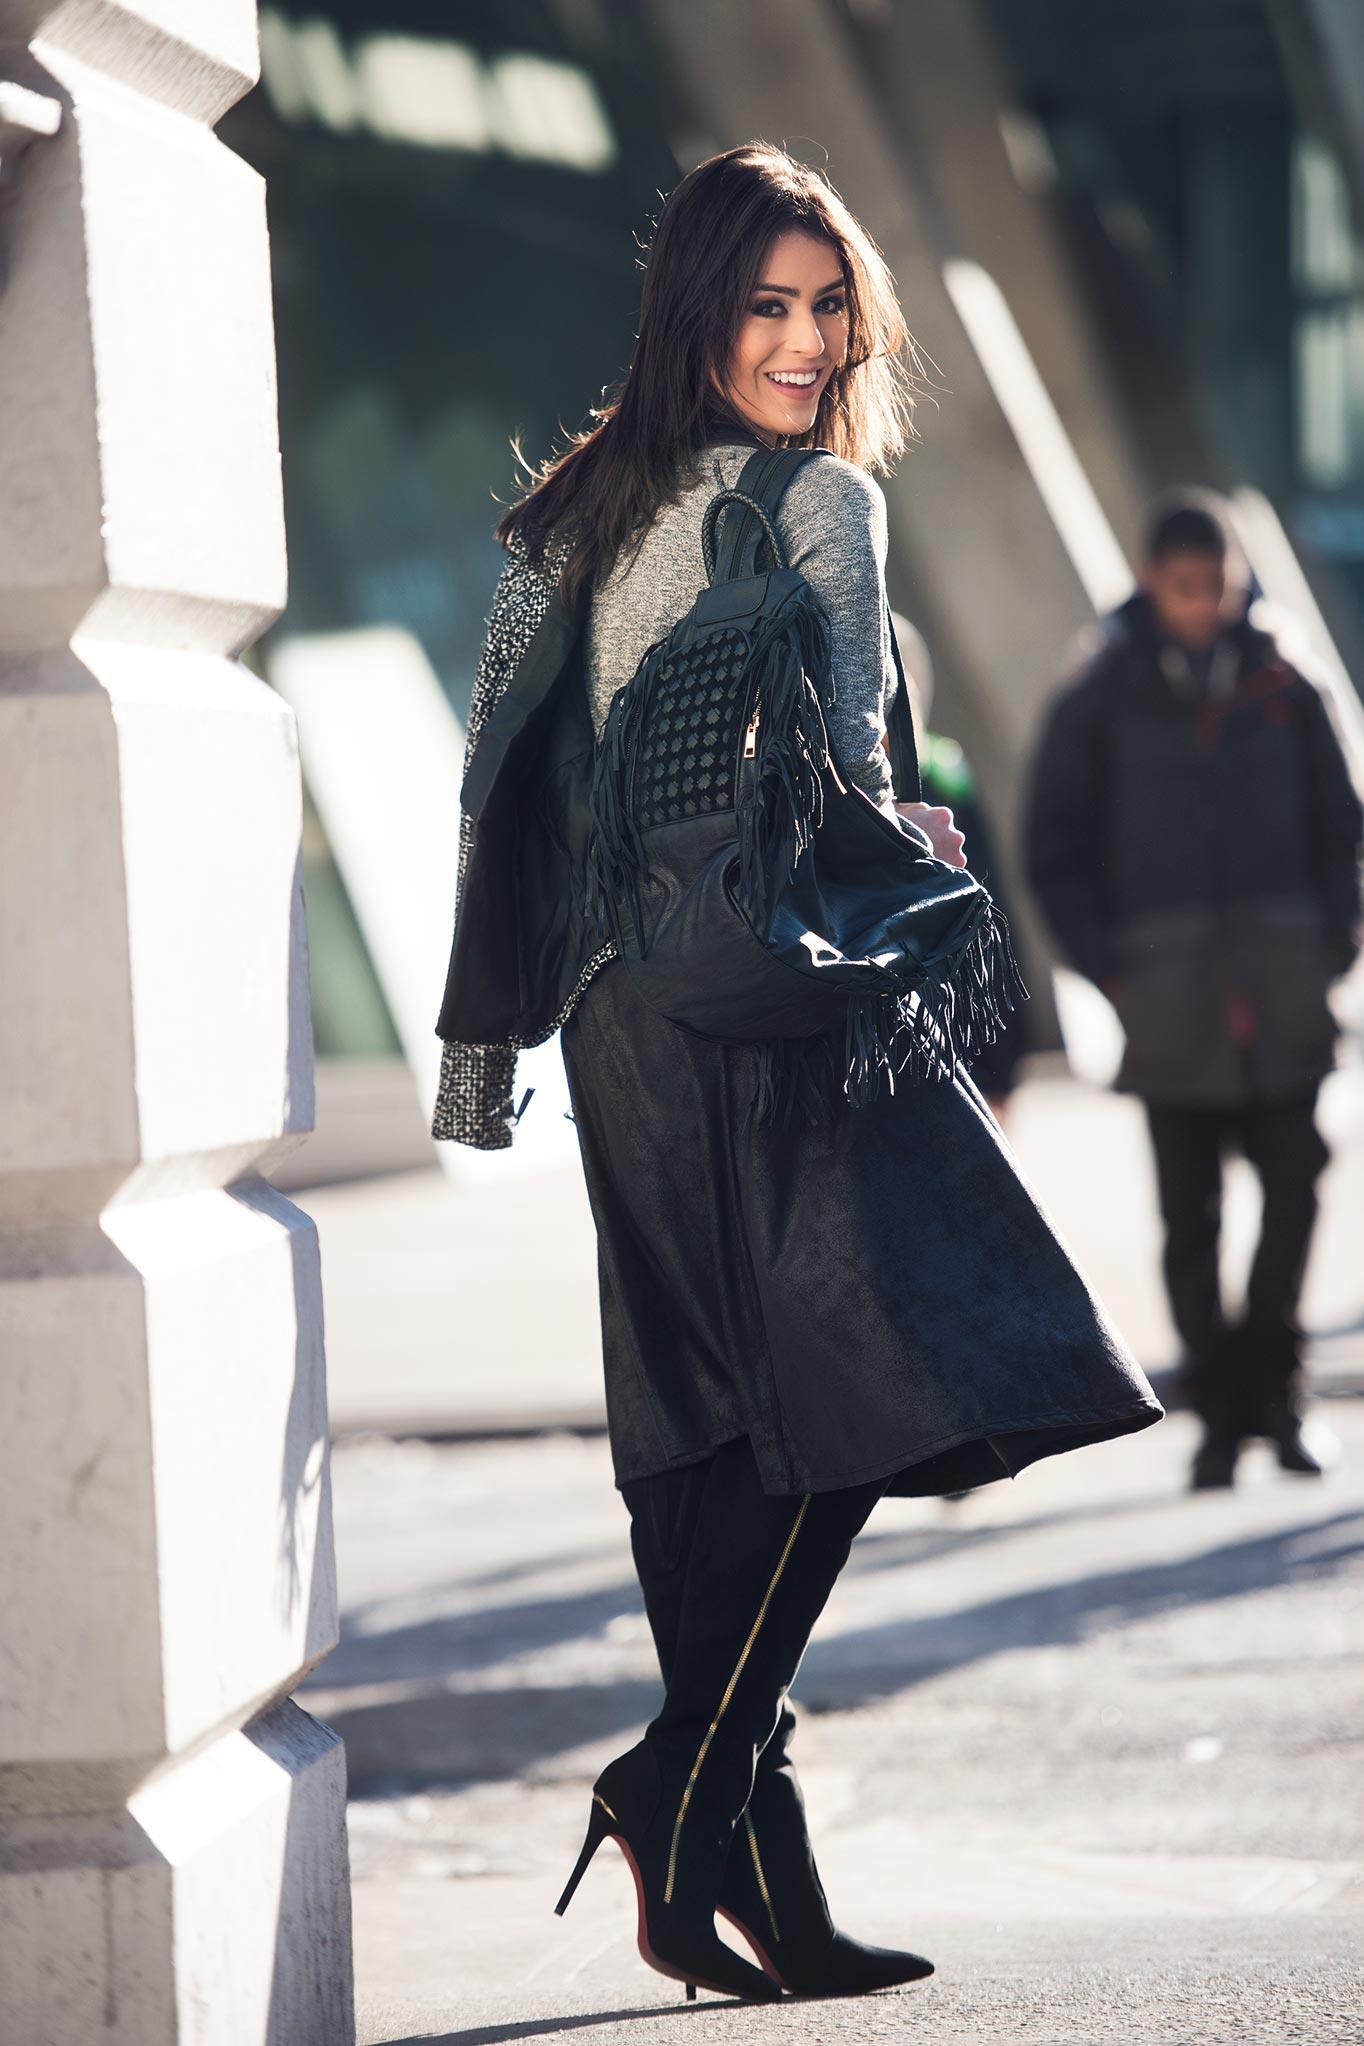 Mariana Saad at New York Fashion Week Fall/Winter 2015